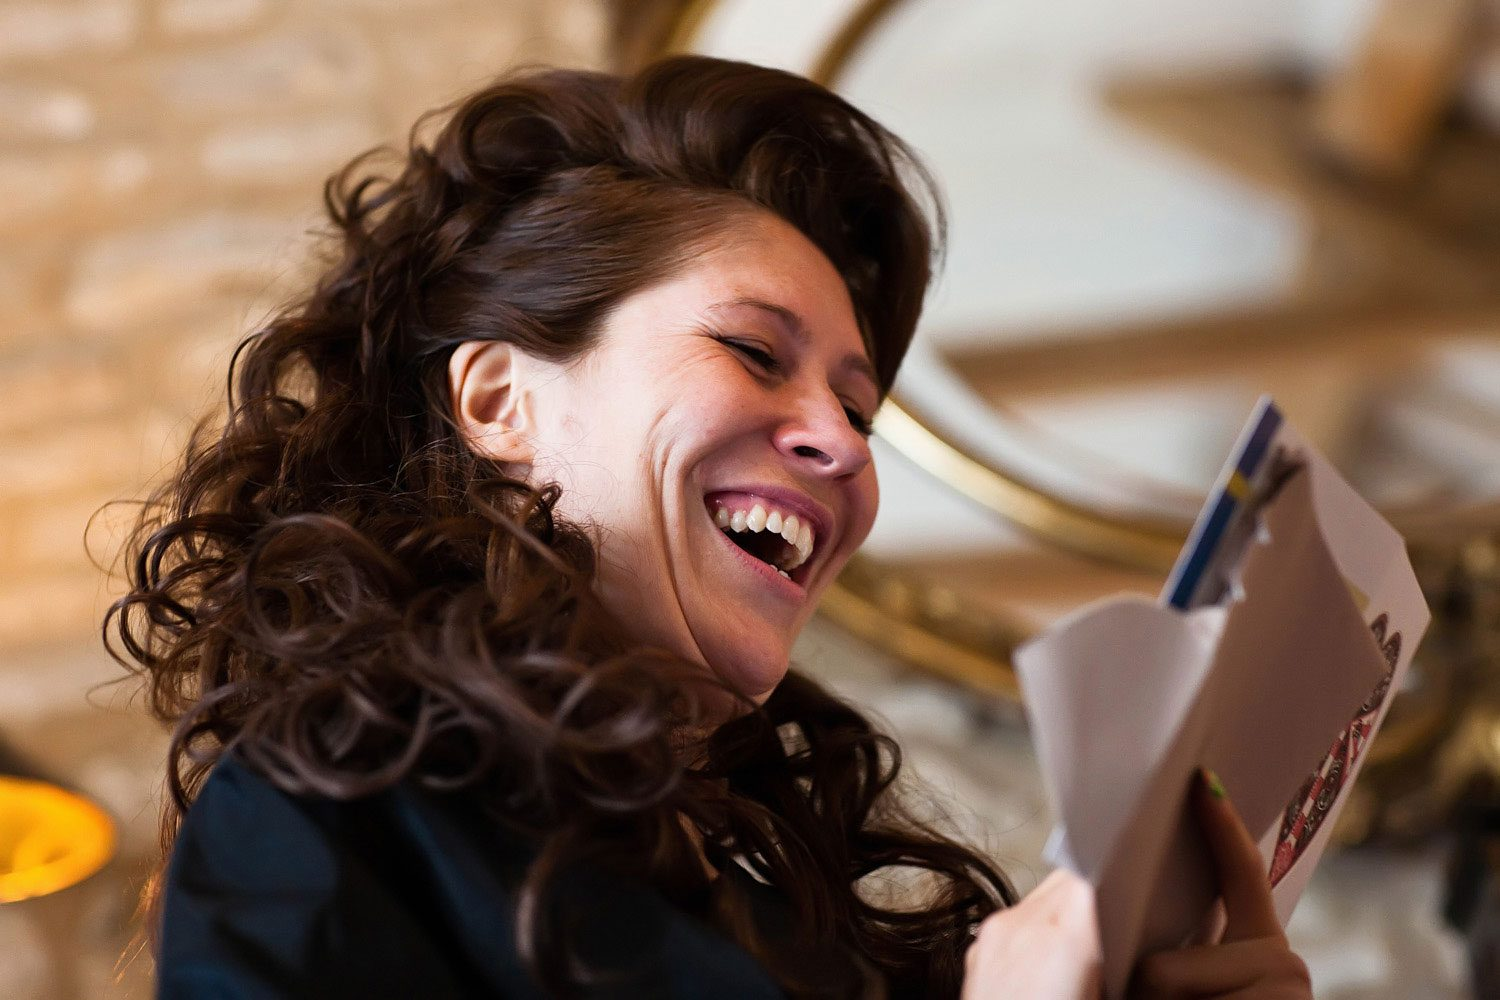 bride laughing at card from groom